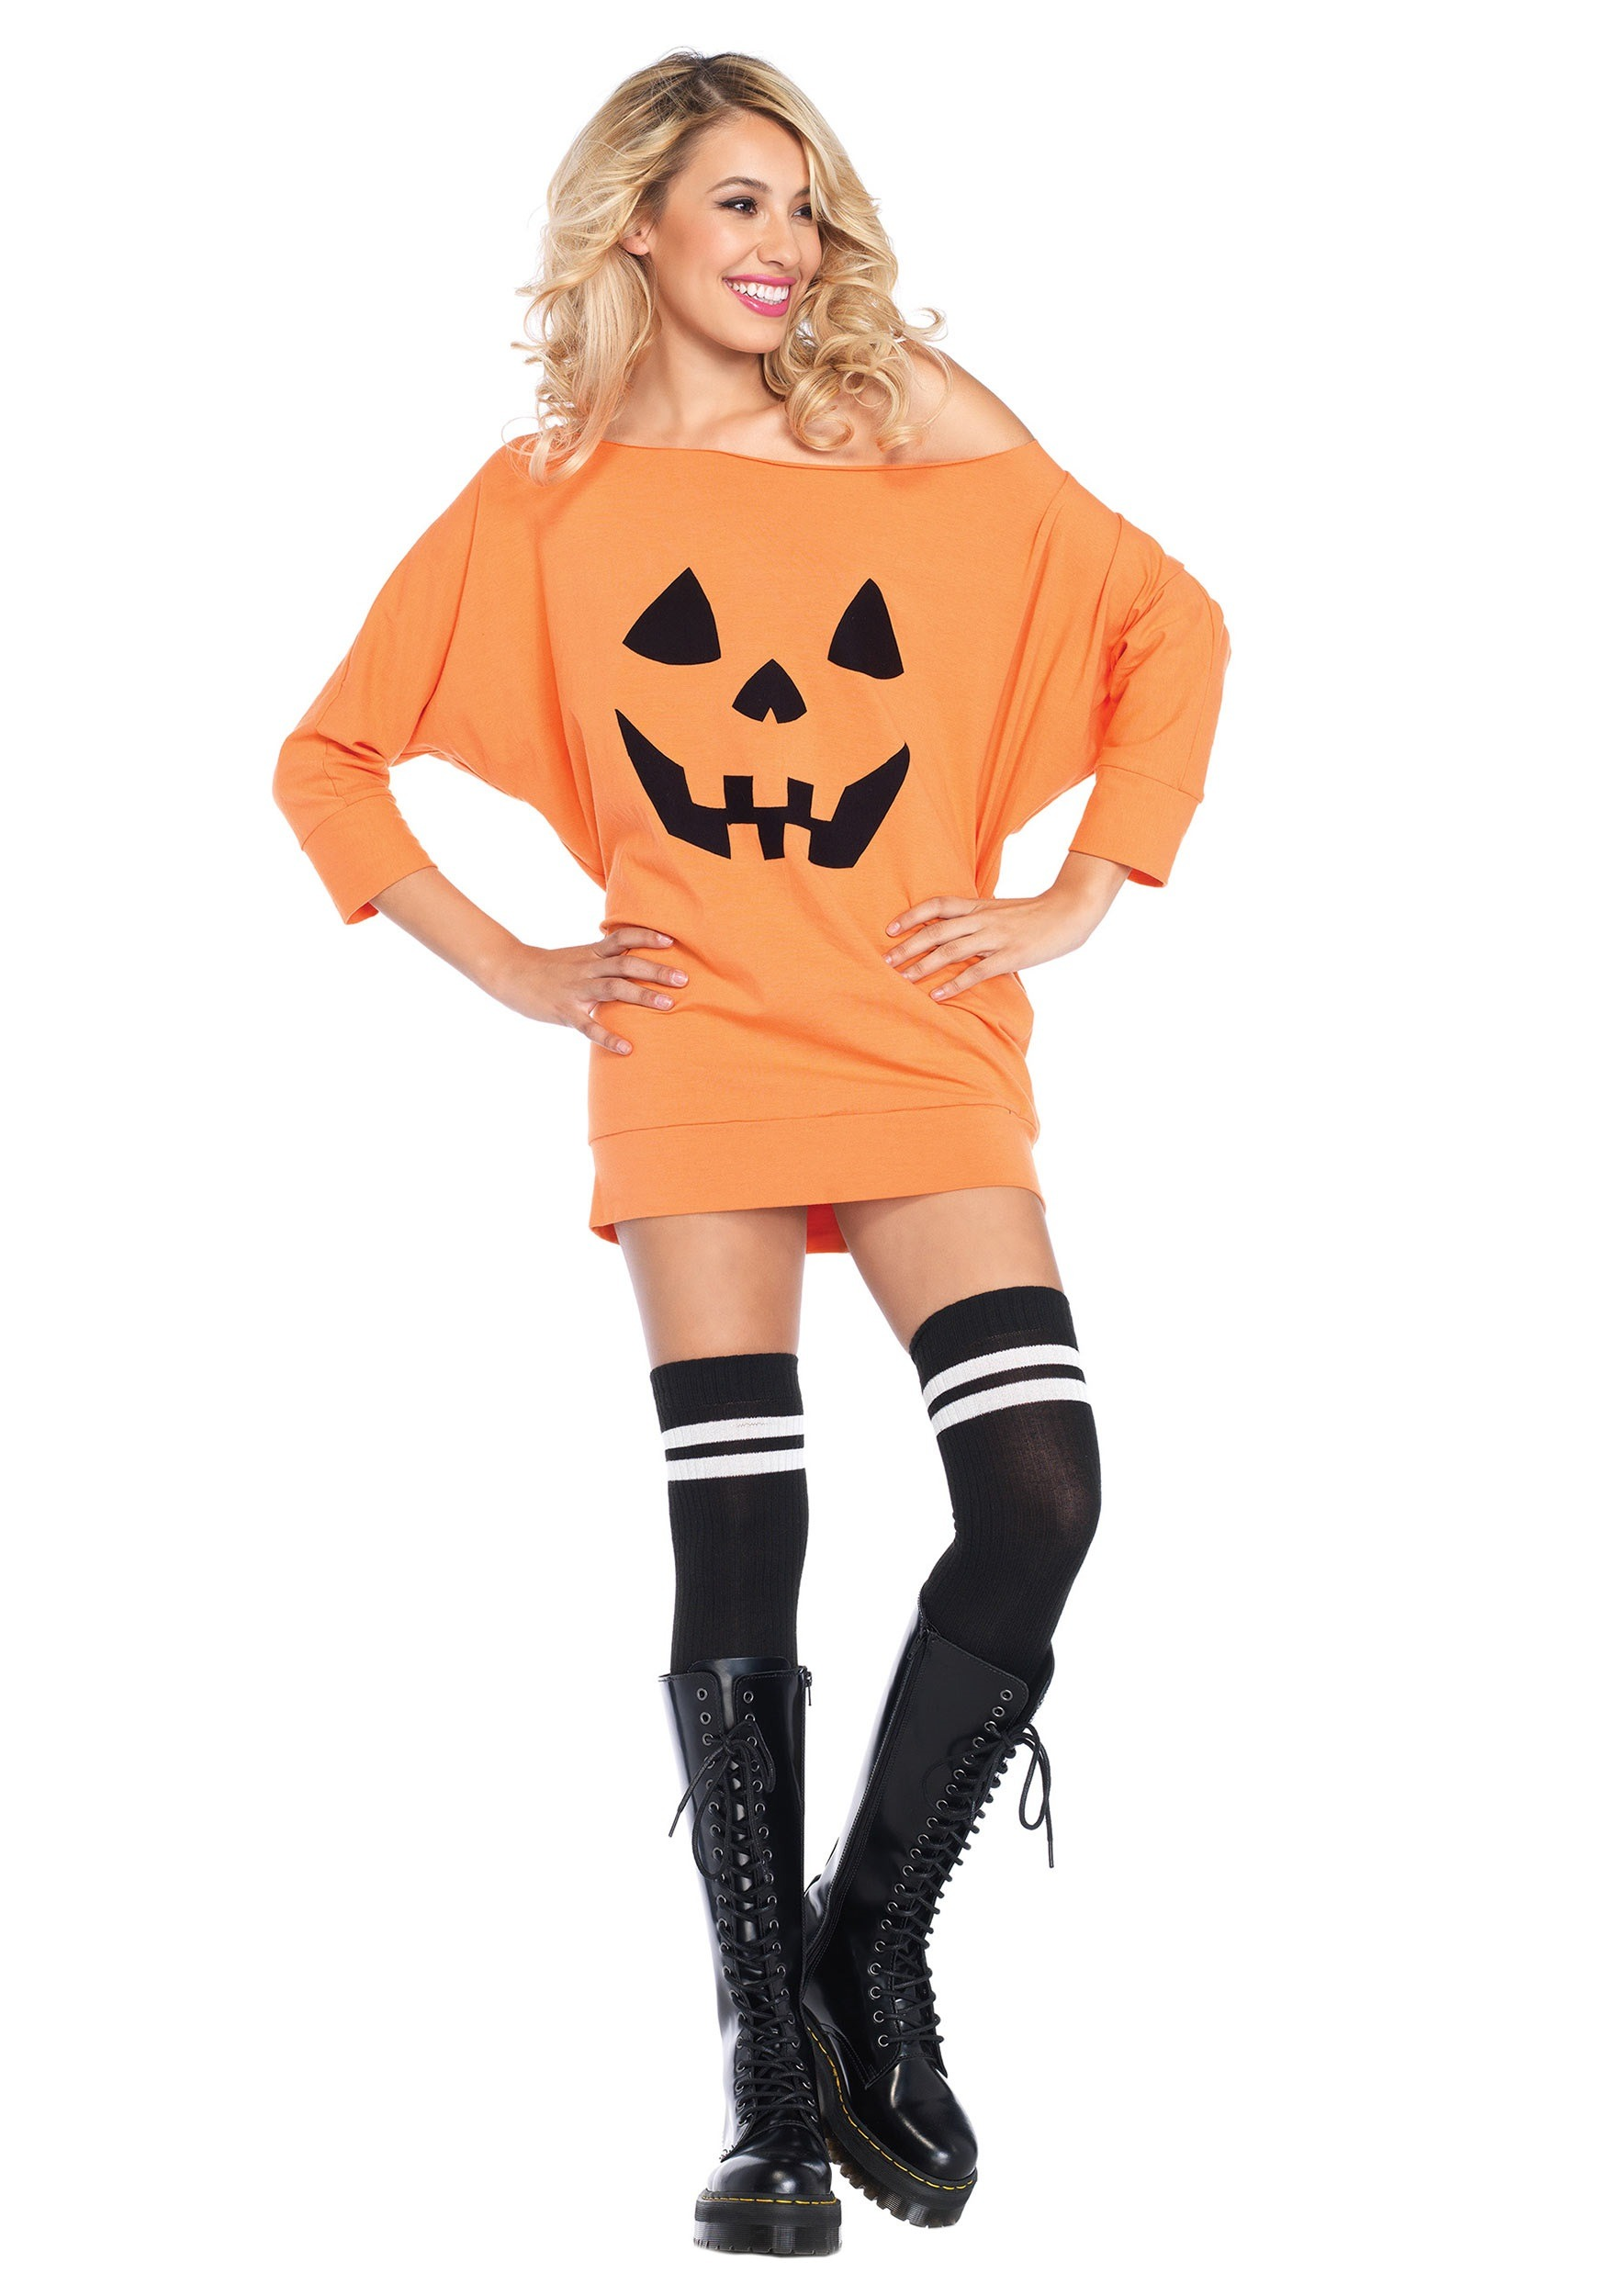 sc 1 st  Halloween Costumes & Adult Jersey Pumpkin Dress